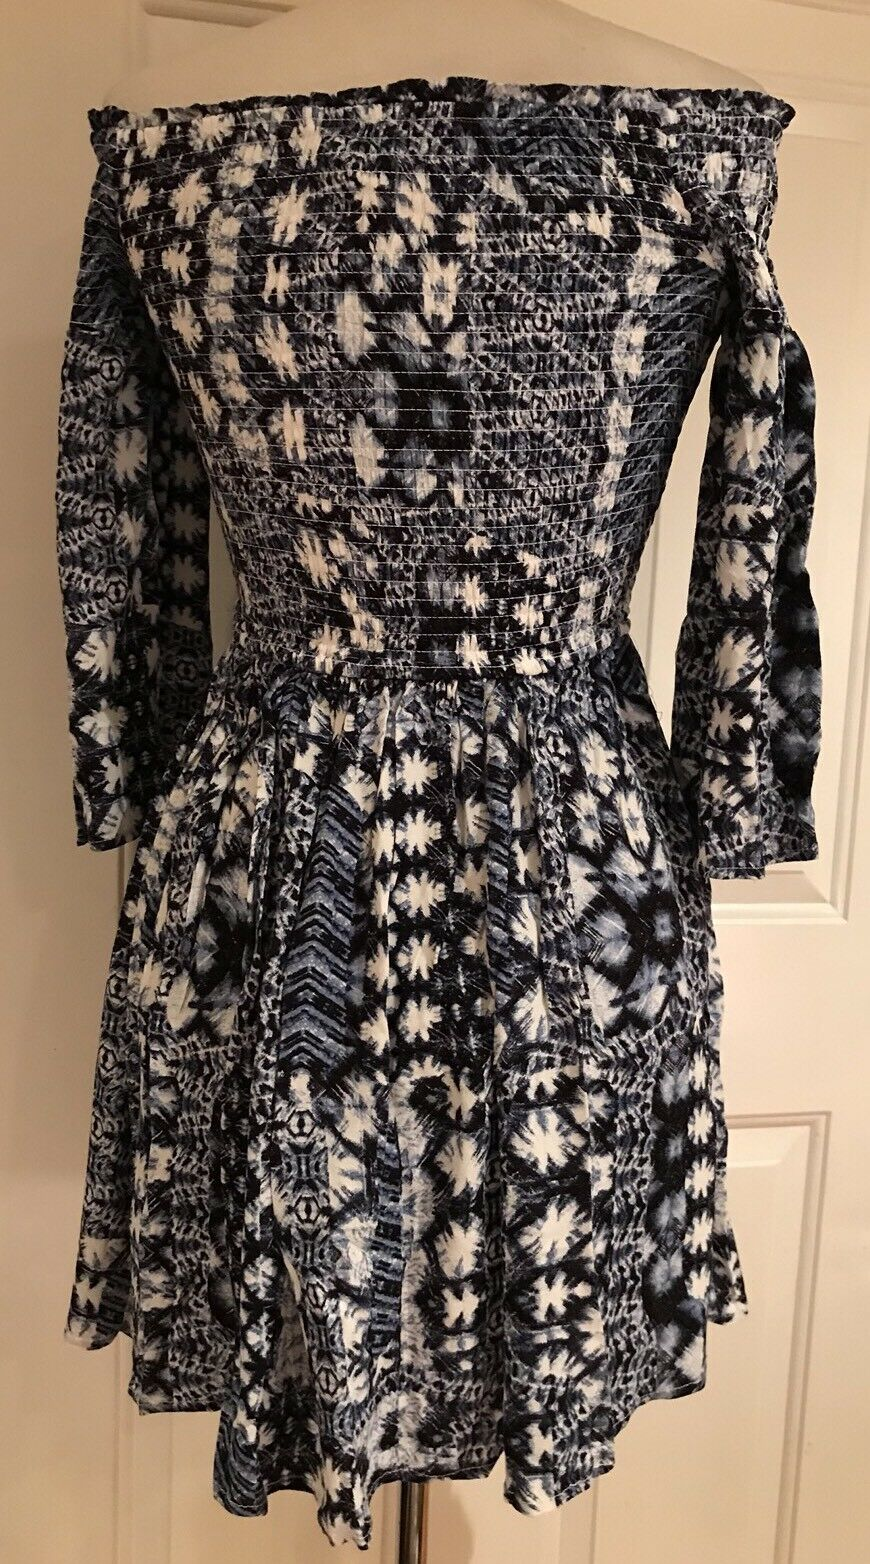 b977b5a3a5 ... American Rag Cie Off the the the Shoulders Fit   Flare Mini Dress bluee  White M ...